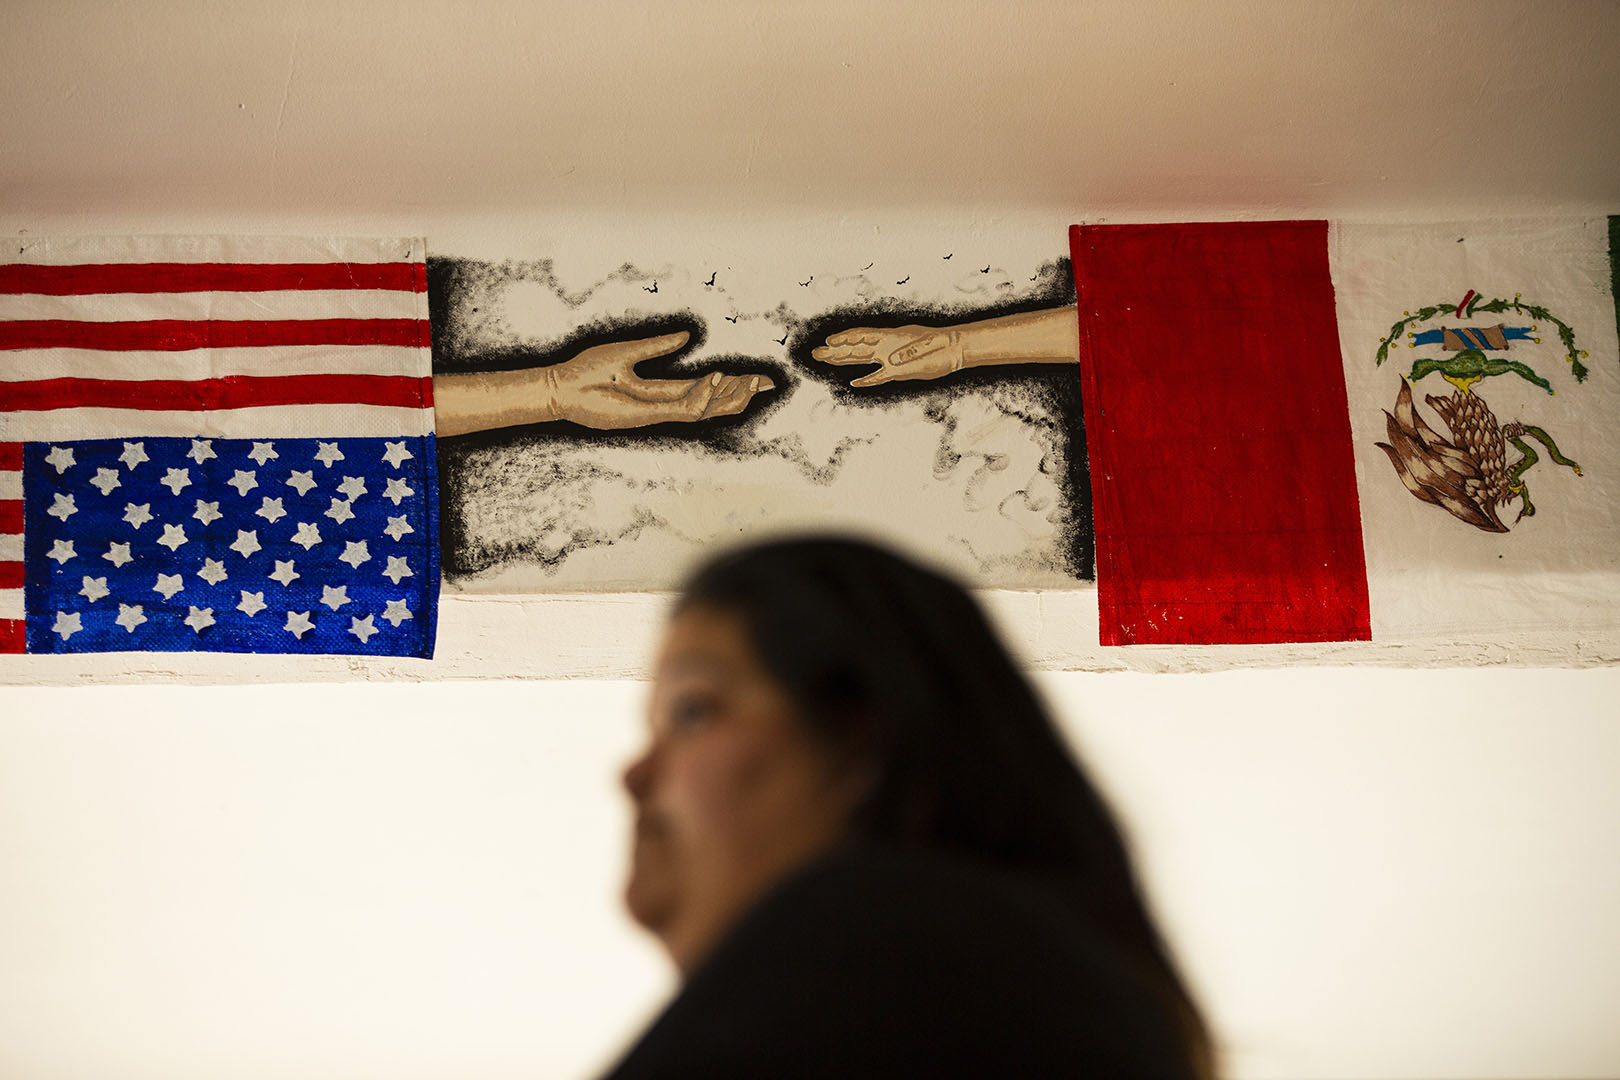 Maggie Loredo, a co-founder and co-director at Poch@ House, talks to a group in their Mexico City space. A piece of art depicting the U.S and Mexico flags hangs on the wall.